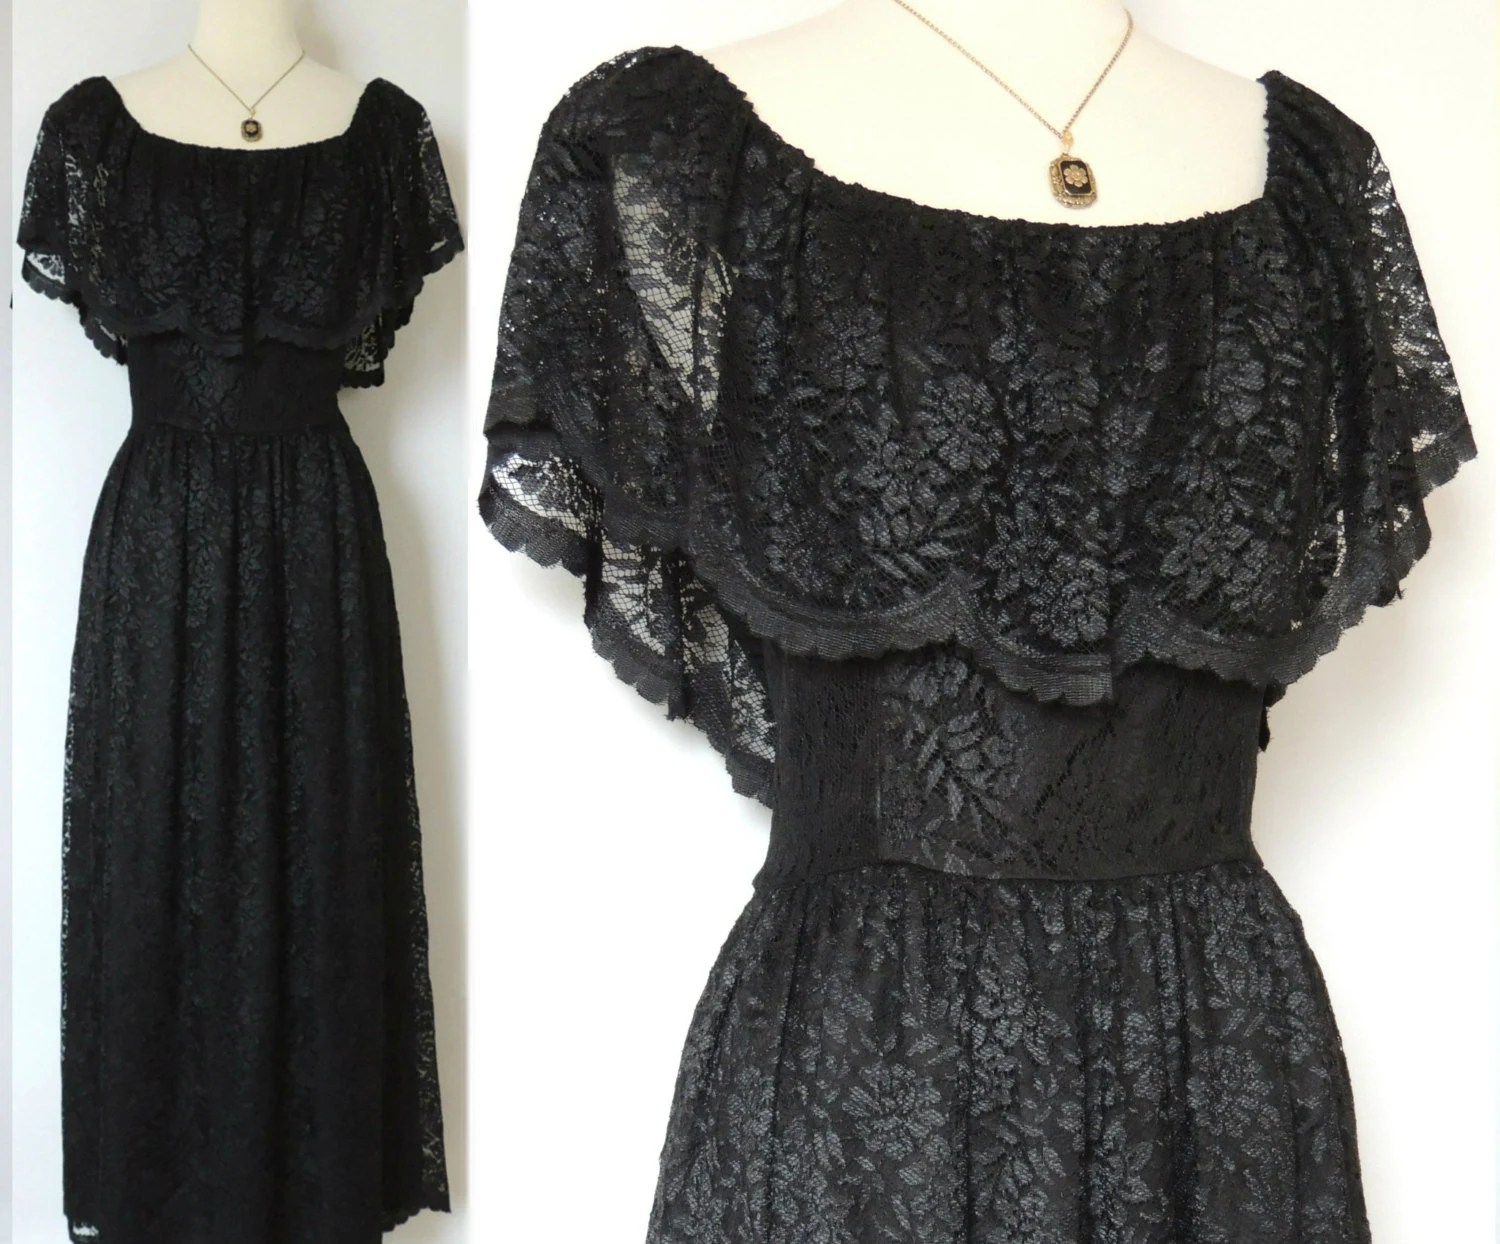 SALE TODAY ONLY Vintage 70s Lace Dress Mexican Style With Lace